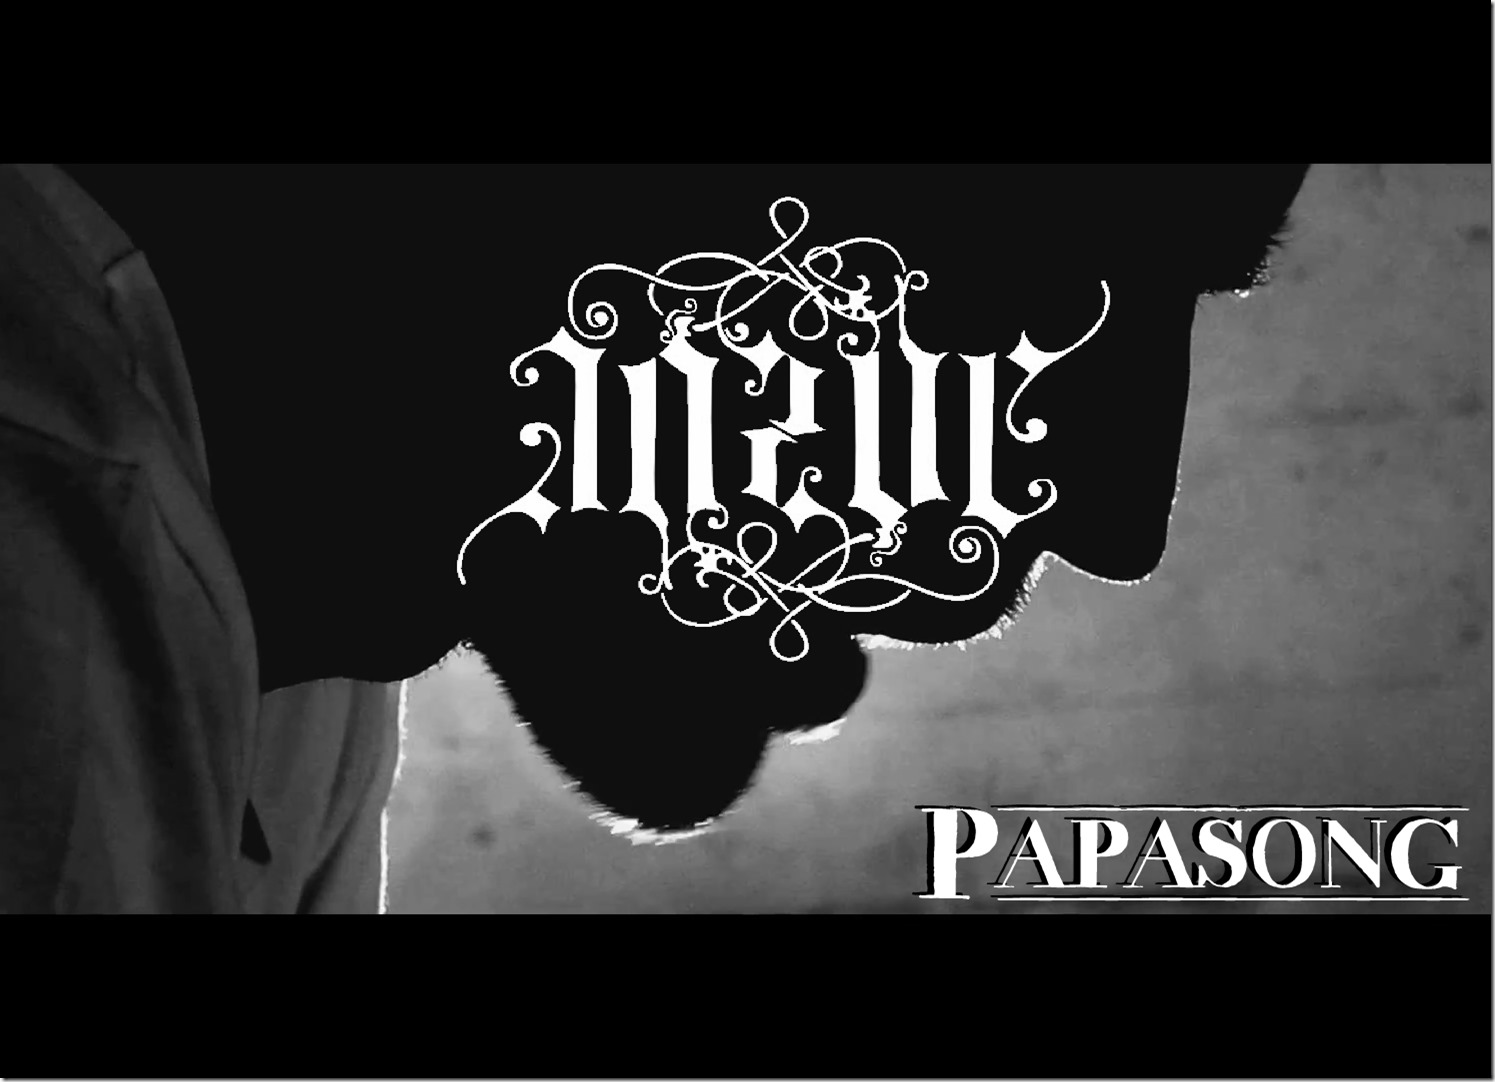 inzoe-papasong-video